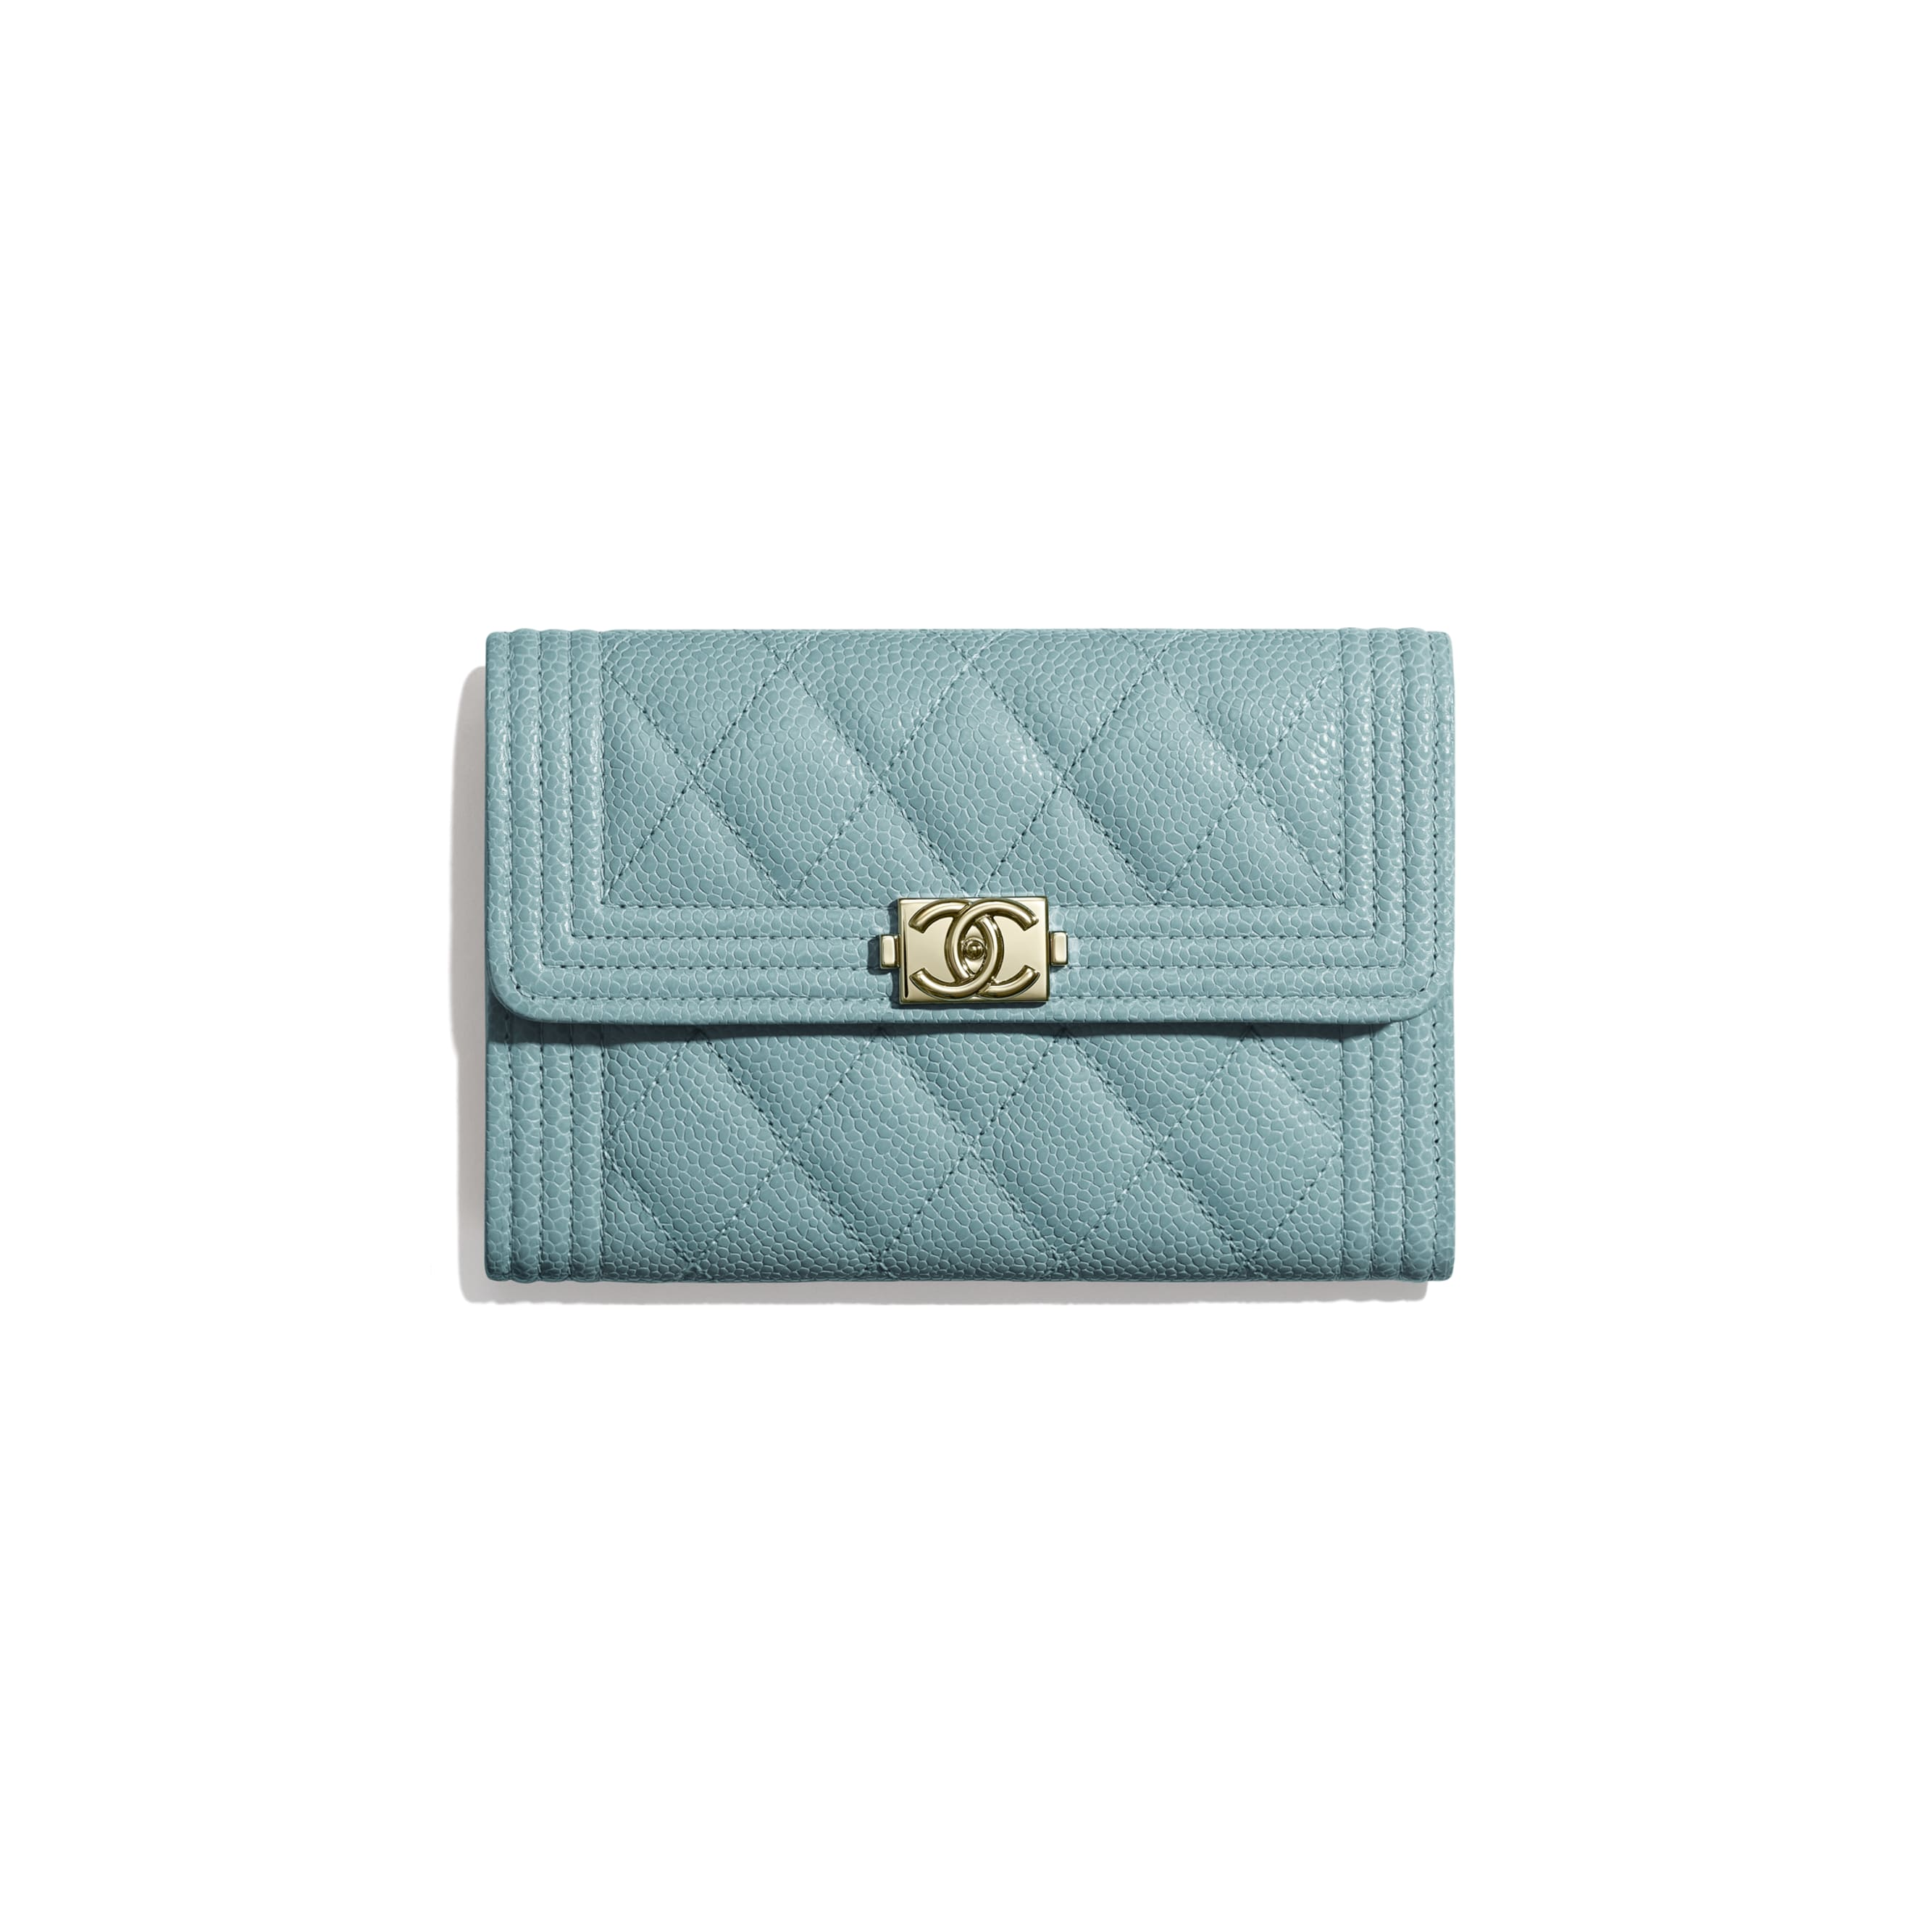 BOY CHANEL Flap Wallet - Blue - Grained Shiny Calfskin & Gold-Tone Metal - Default view - see standard sized version